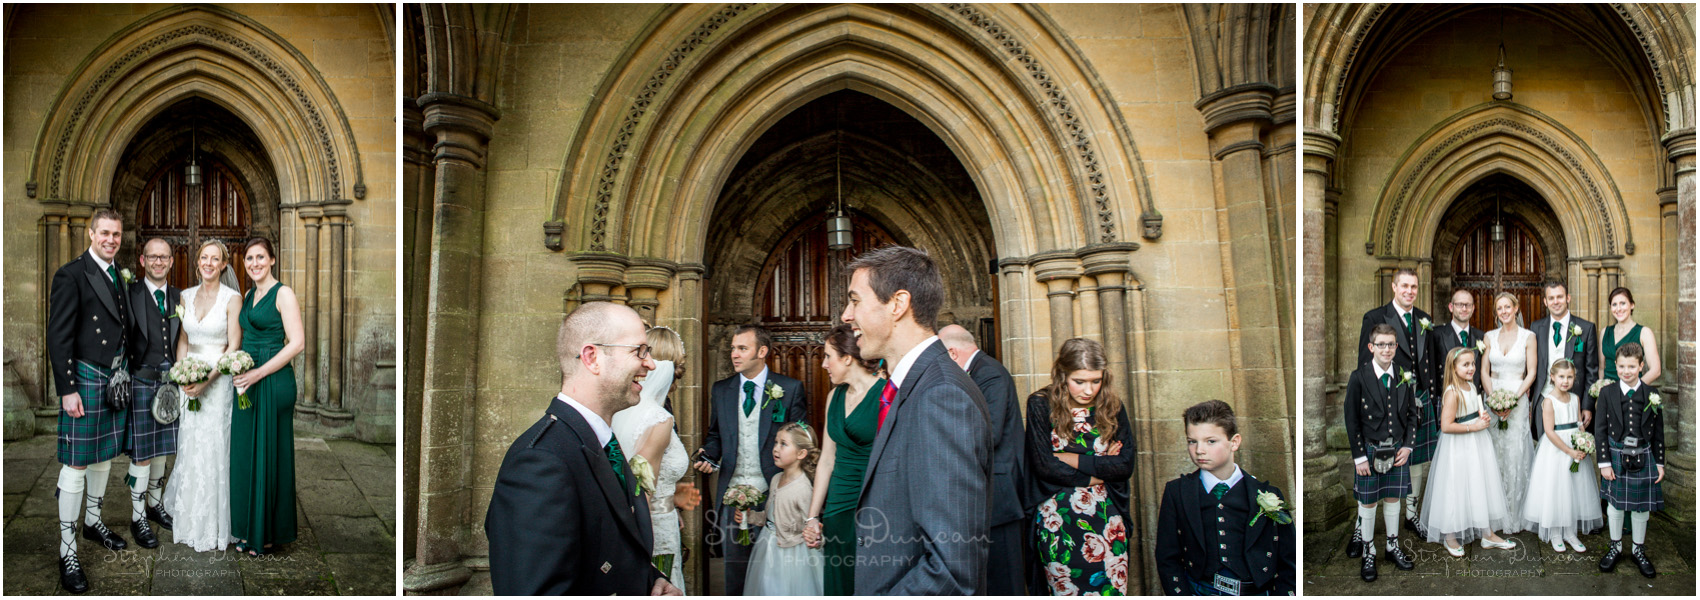 Romsey Abbey wedding photographer group photos at north door